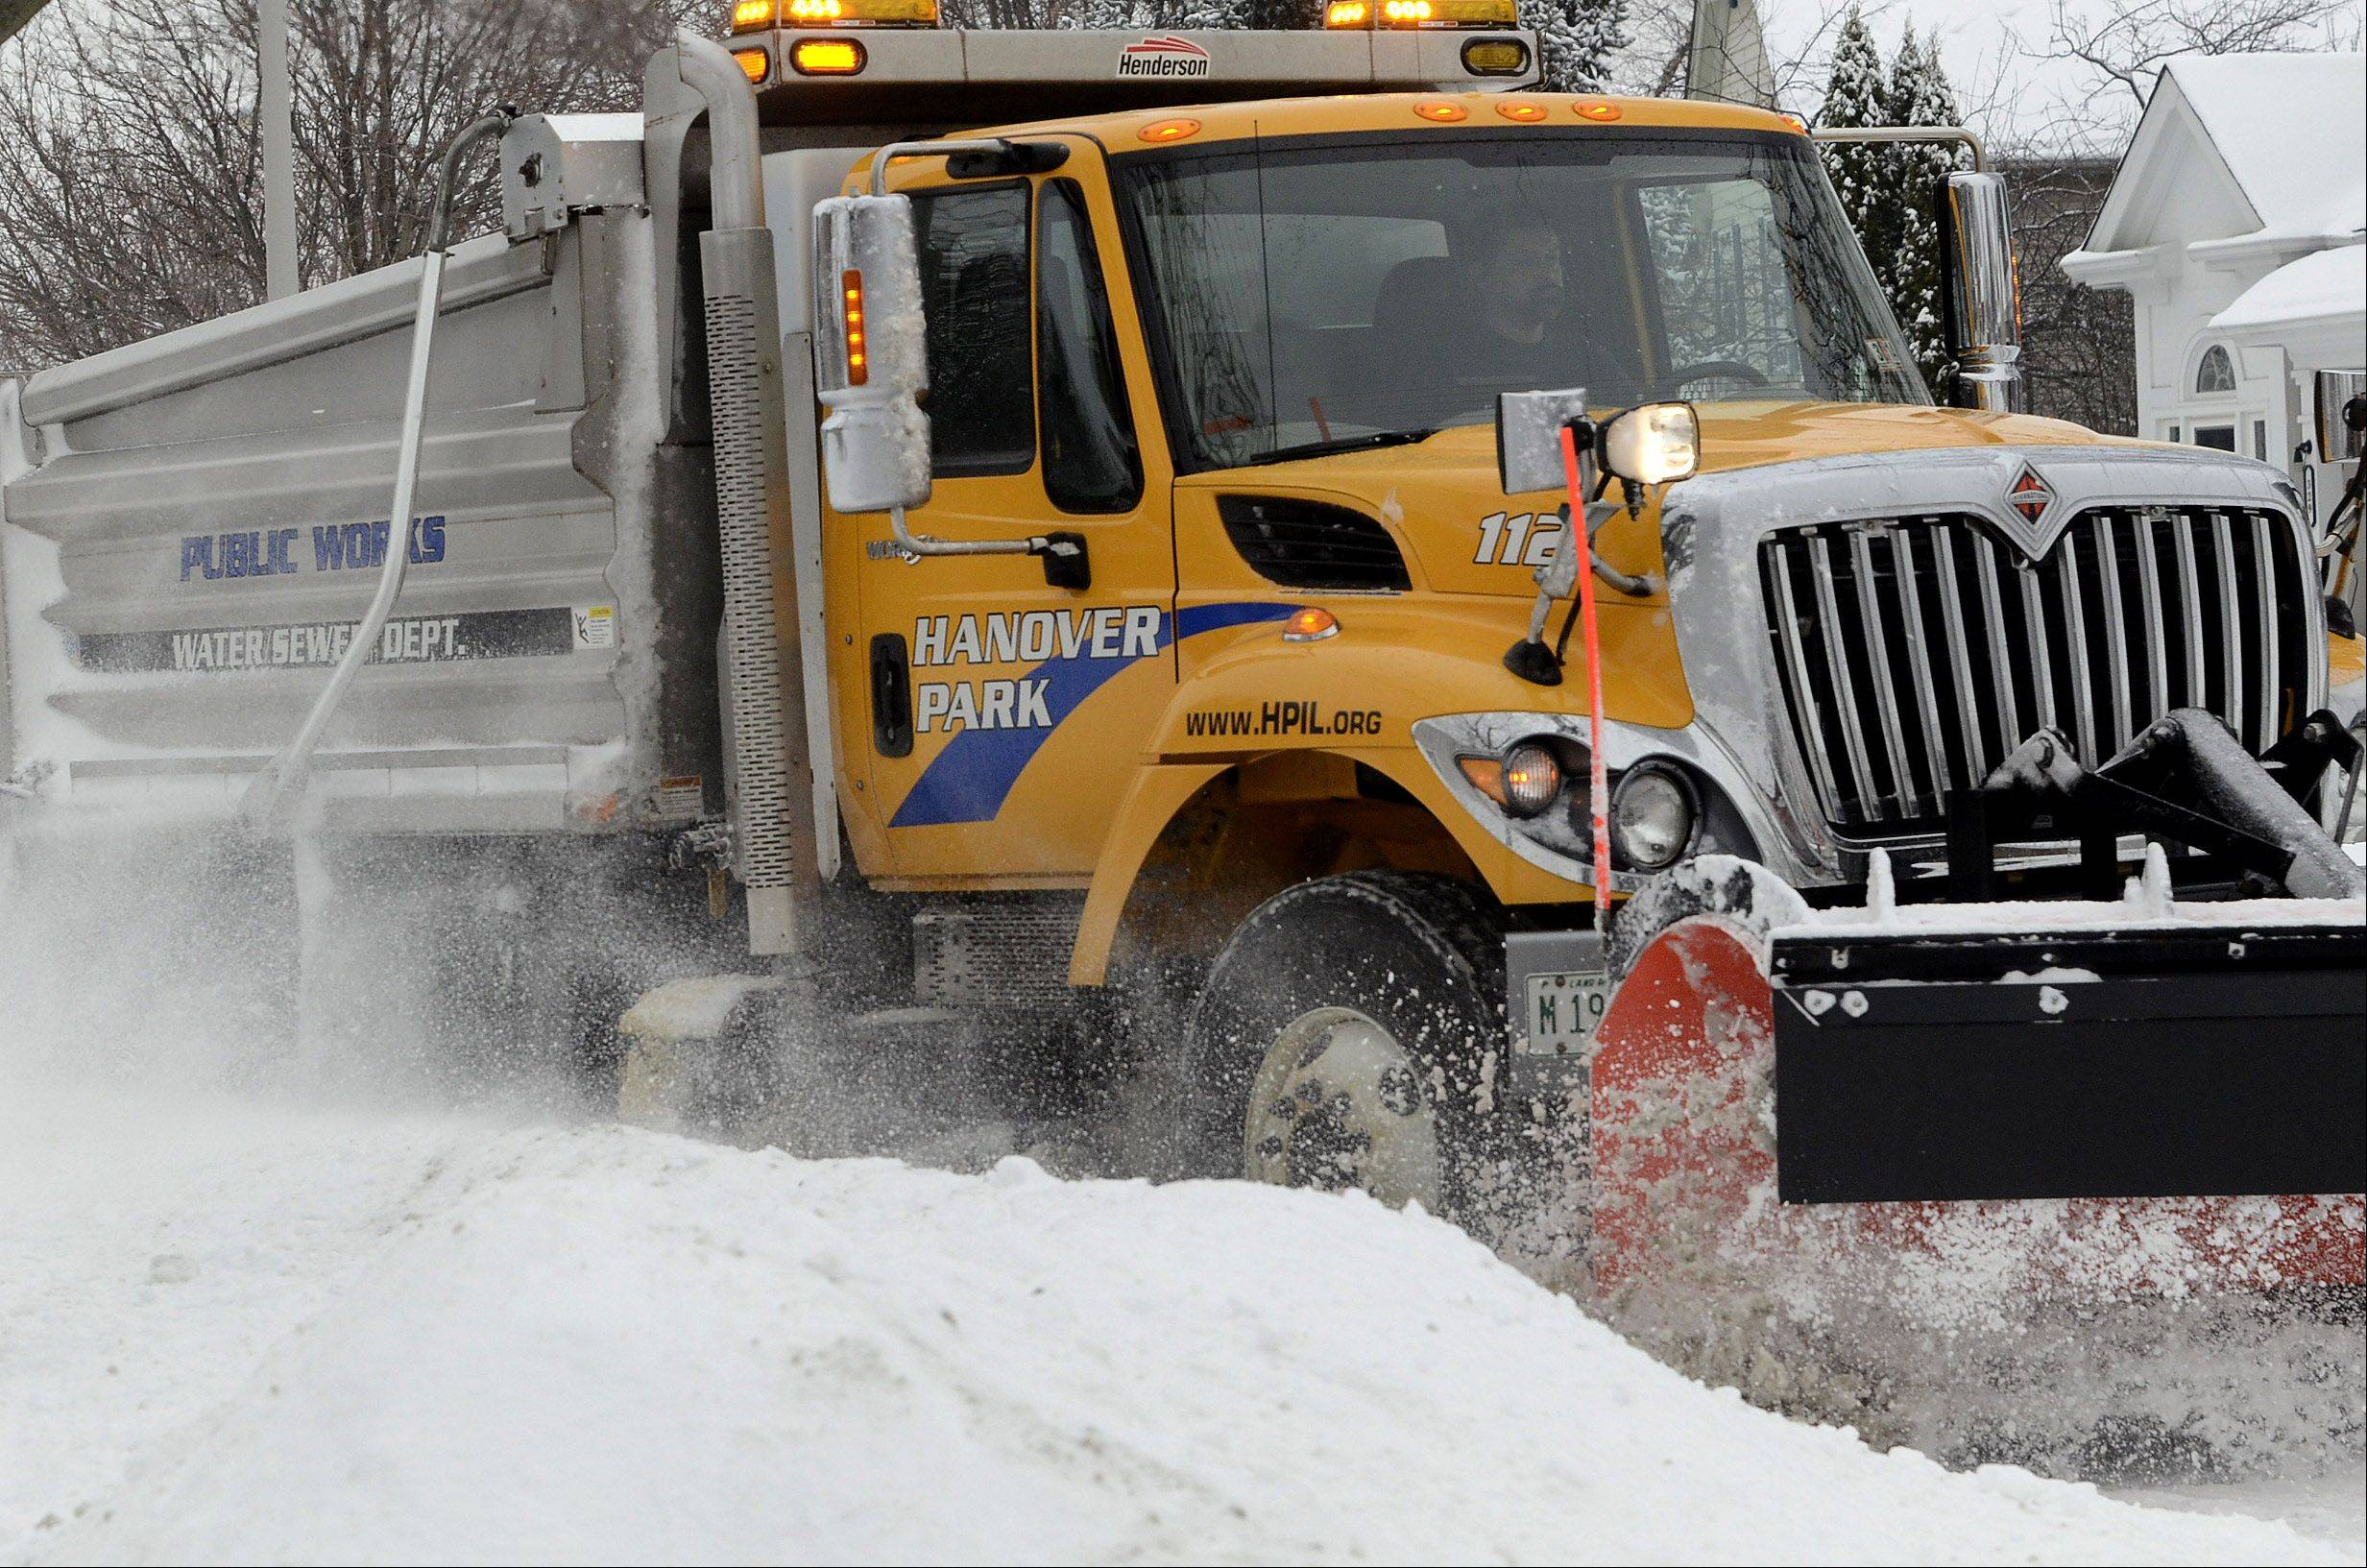 A snow plow clears the street in Hanover Park Saturday morning. State police are warning of slippery roads tonight and overnight.